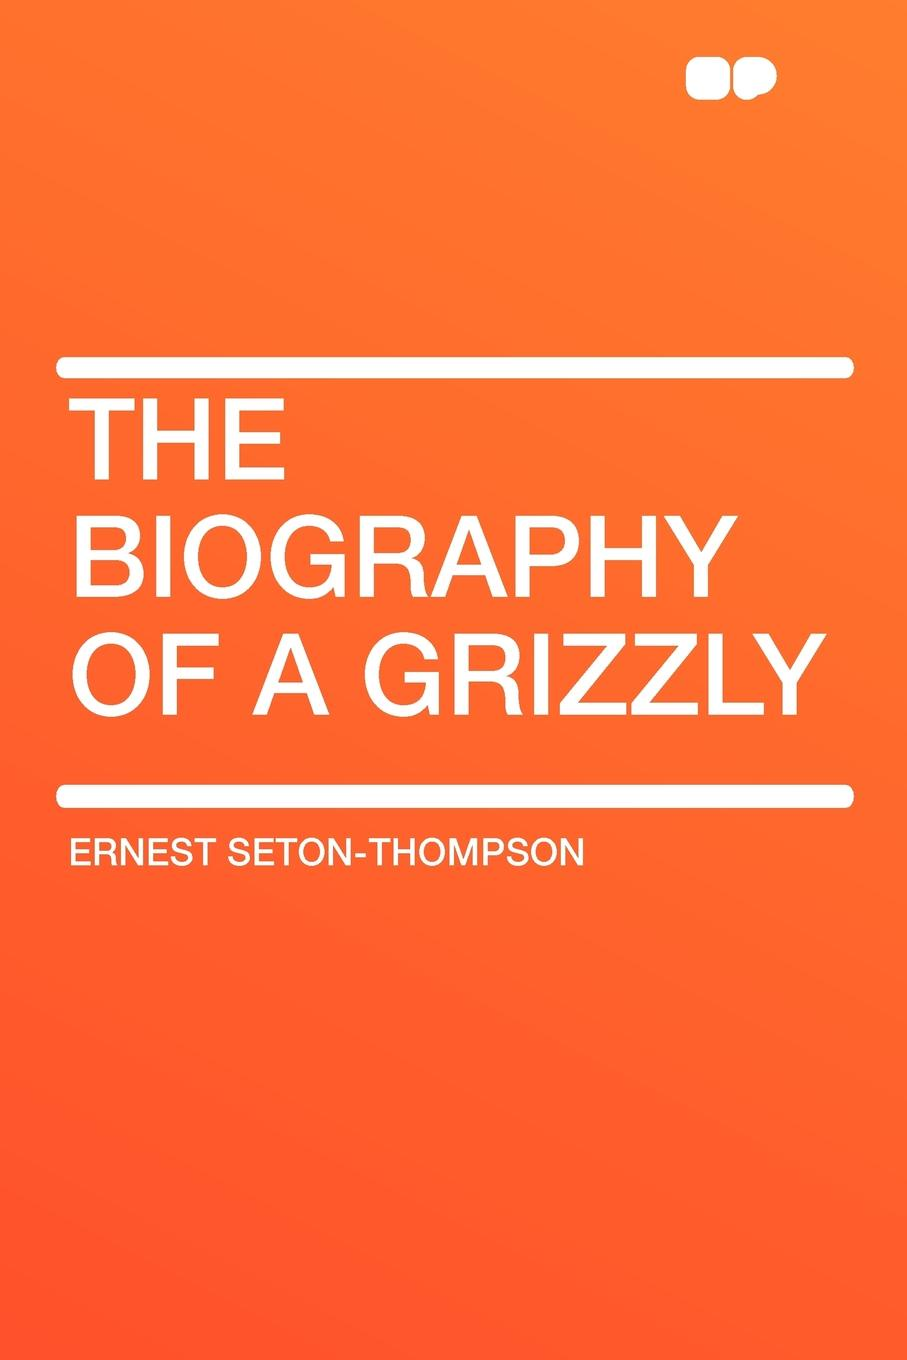 Ernest Seton-Thompson The Biography of a Grizzly